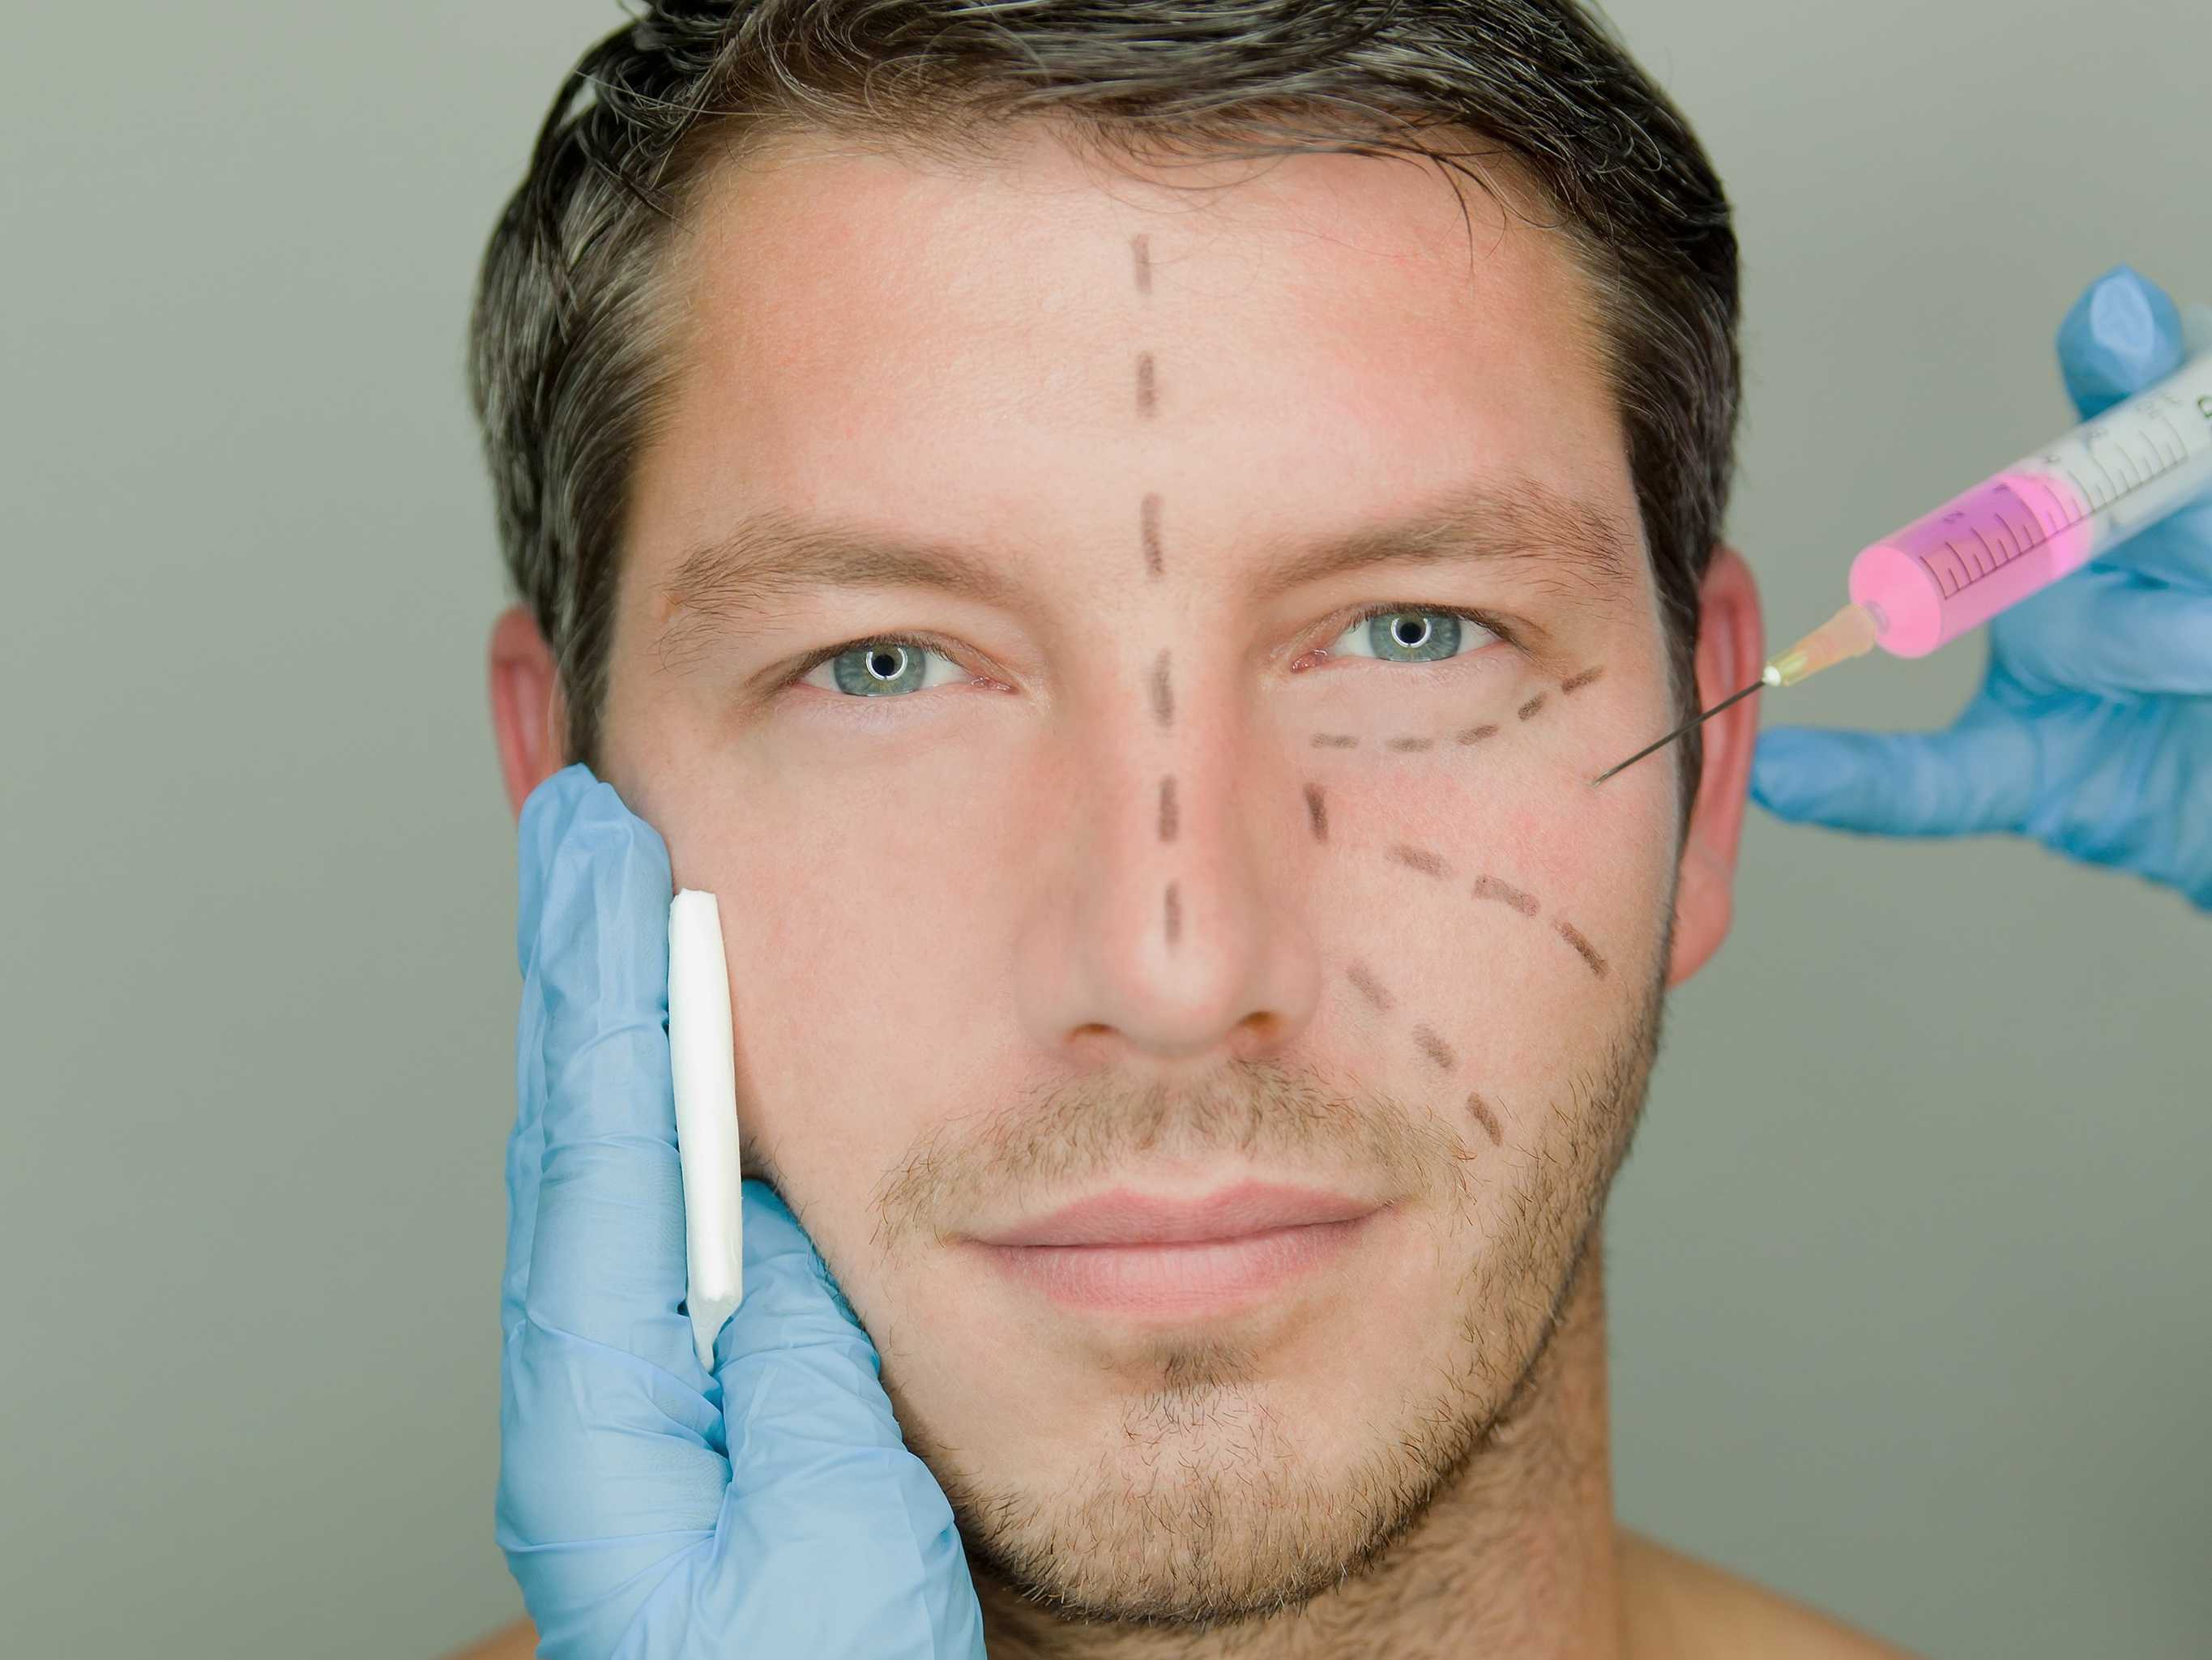 male cosmetic surgery photo - 1